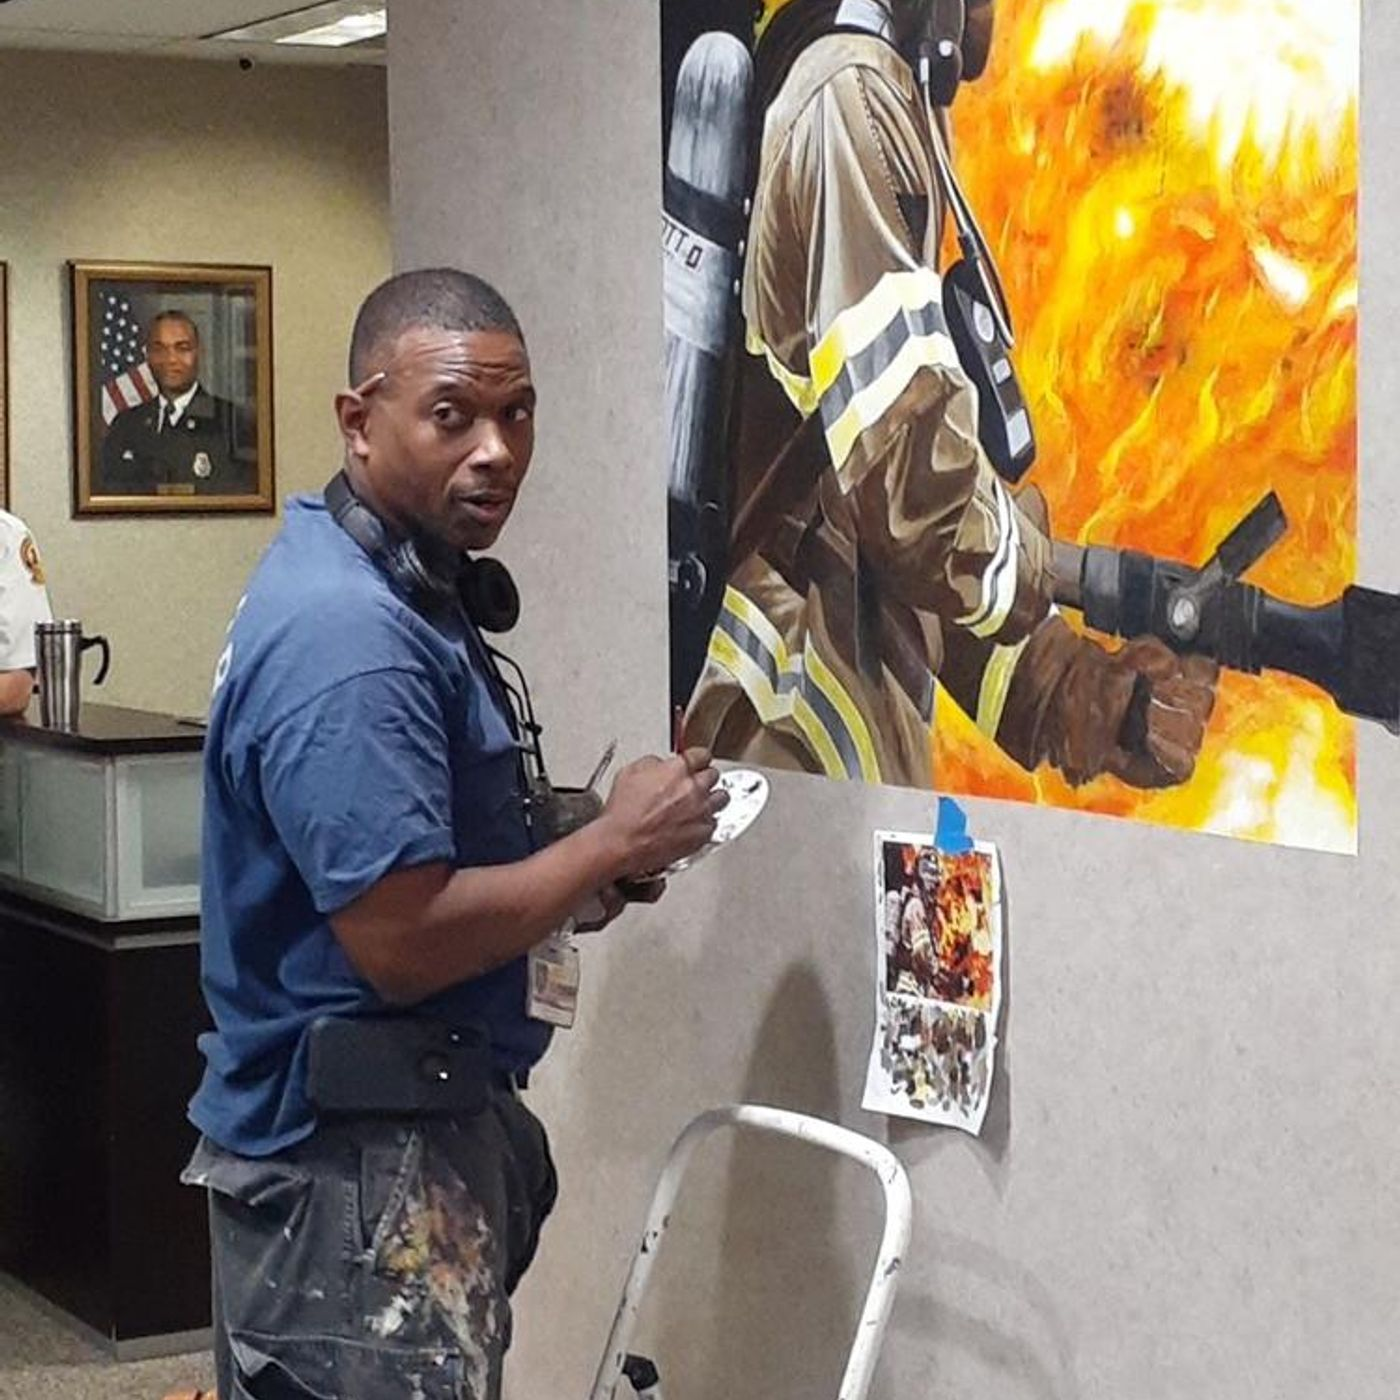 Gwinnett Resident & Retired Fire Fiighter Says He Will Paint Until He Gets Old